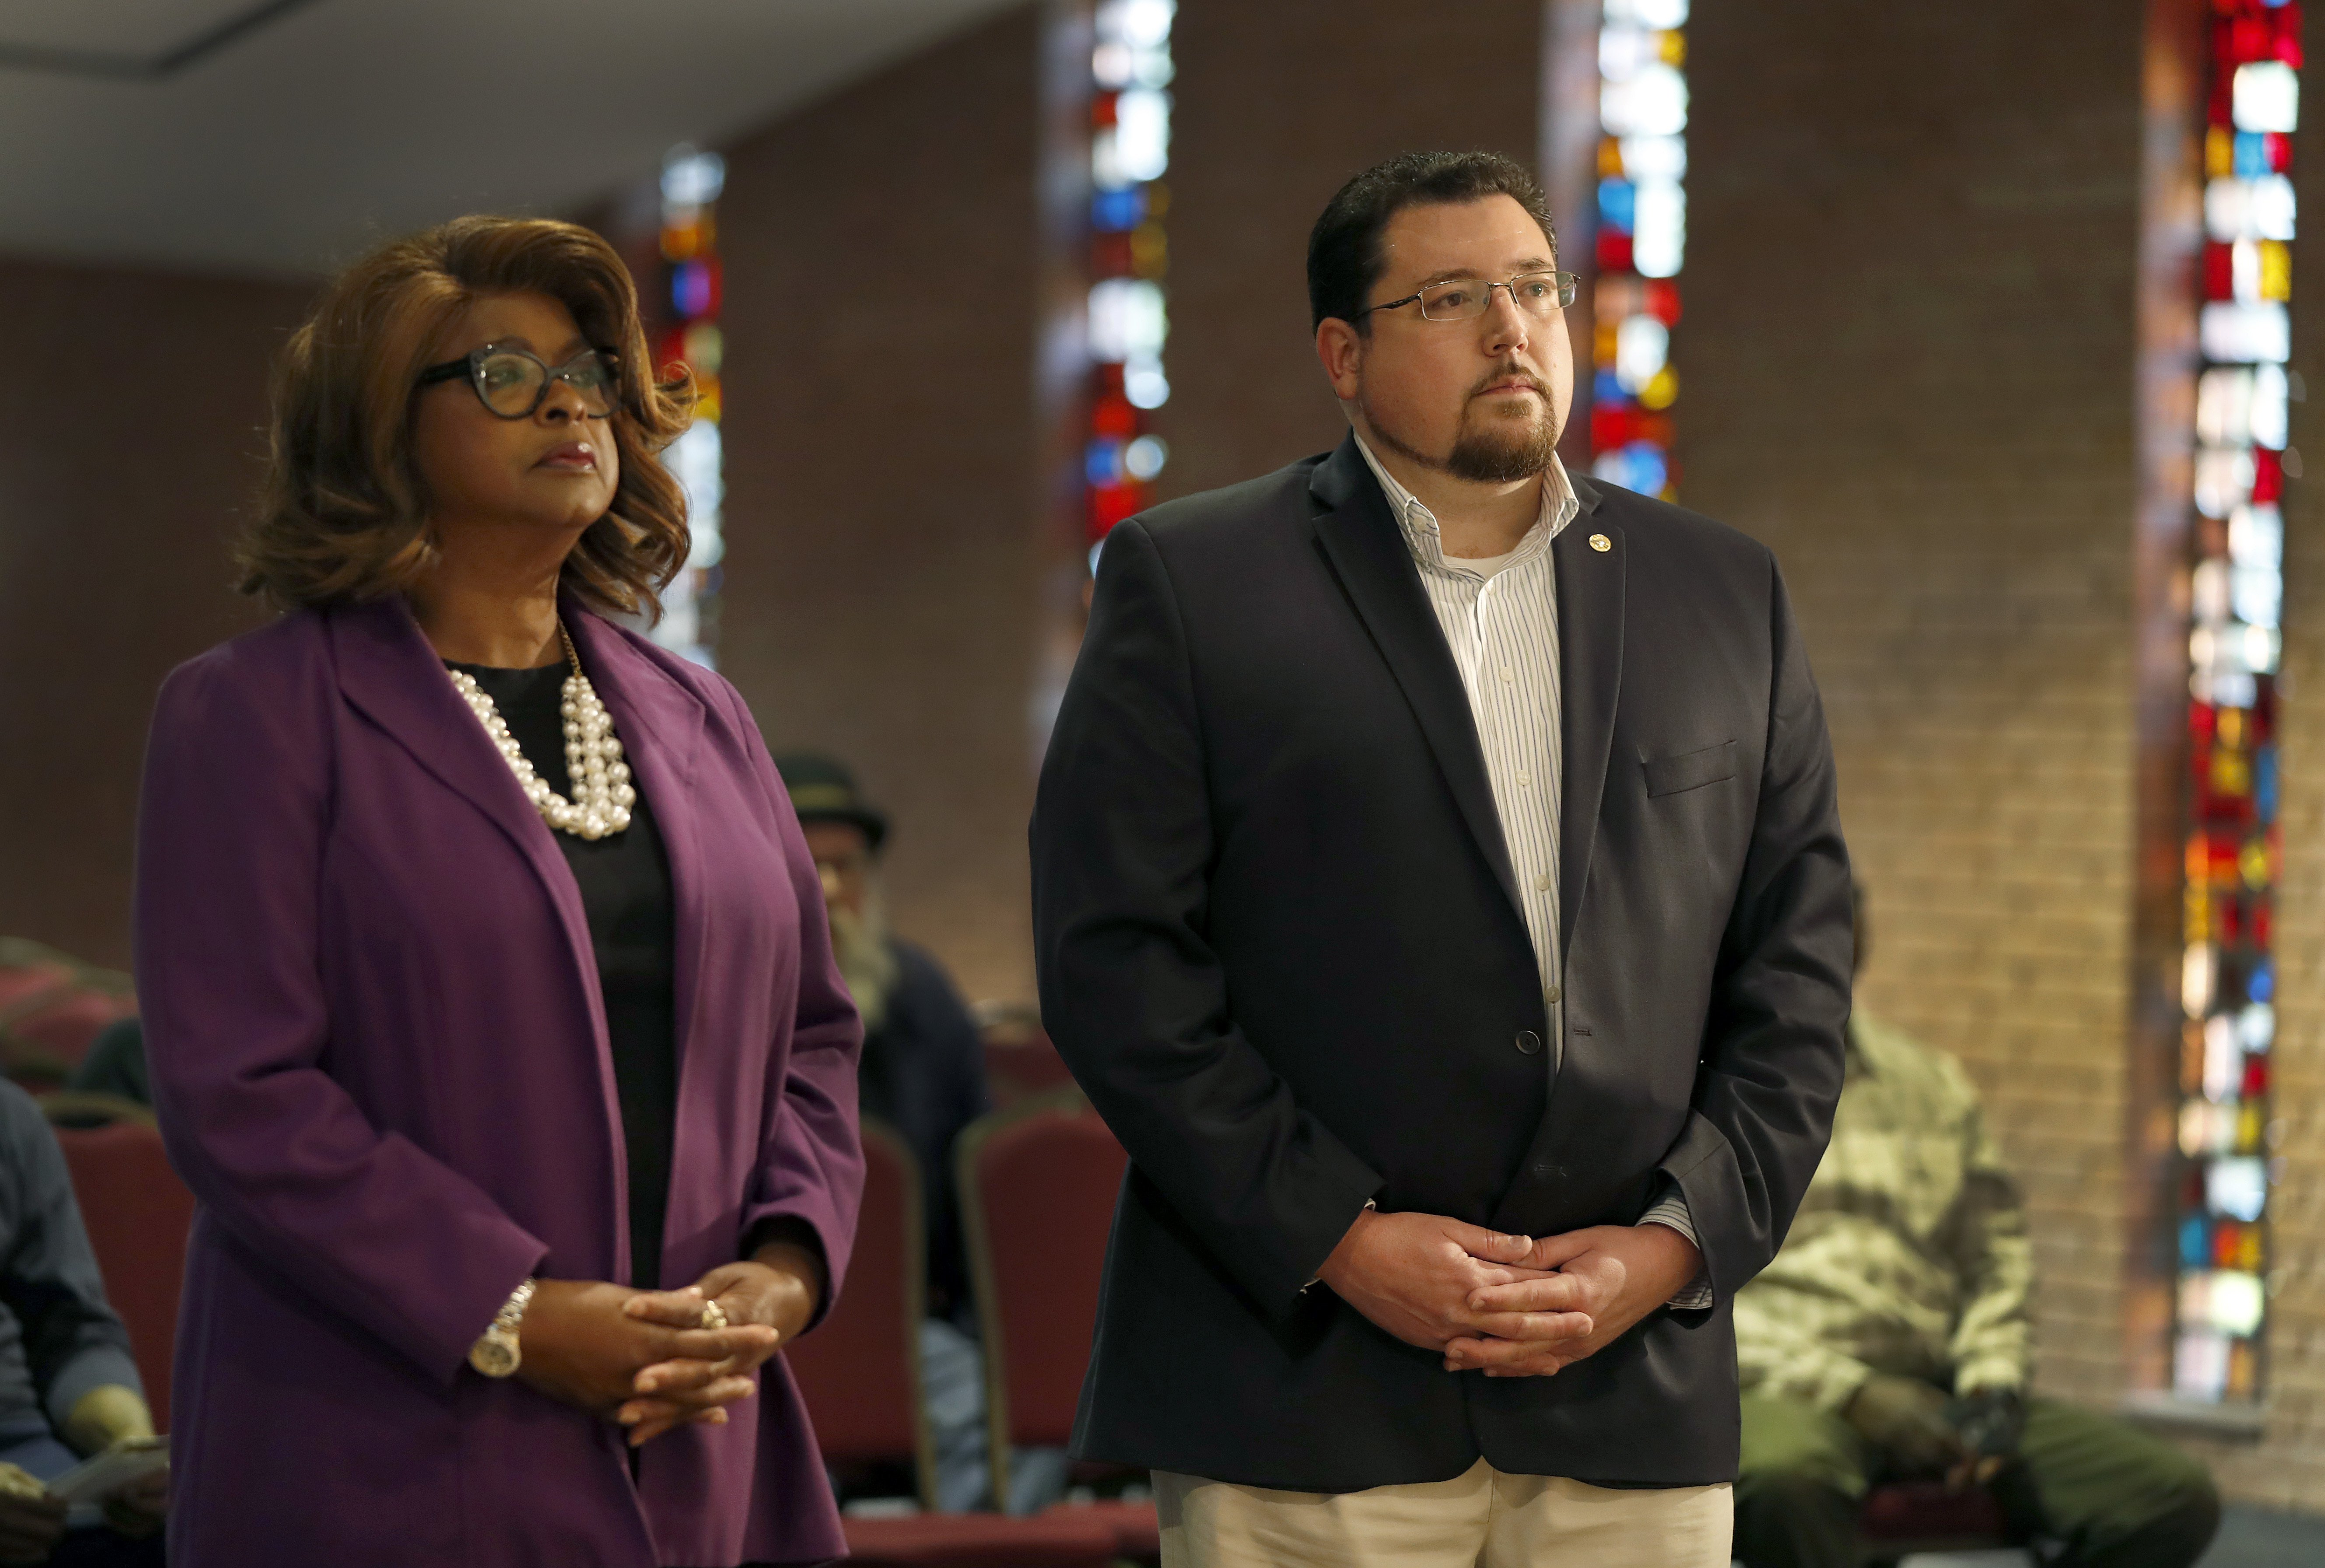 Ferguson to Decide if It Wants a New Mayor for First Time Since Michael Brown Killing